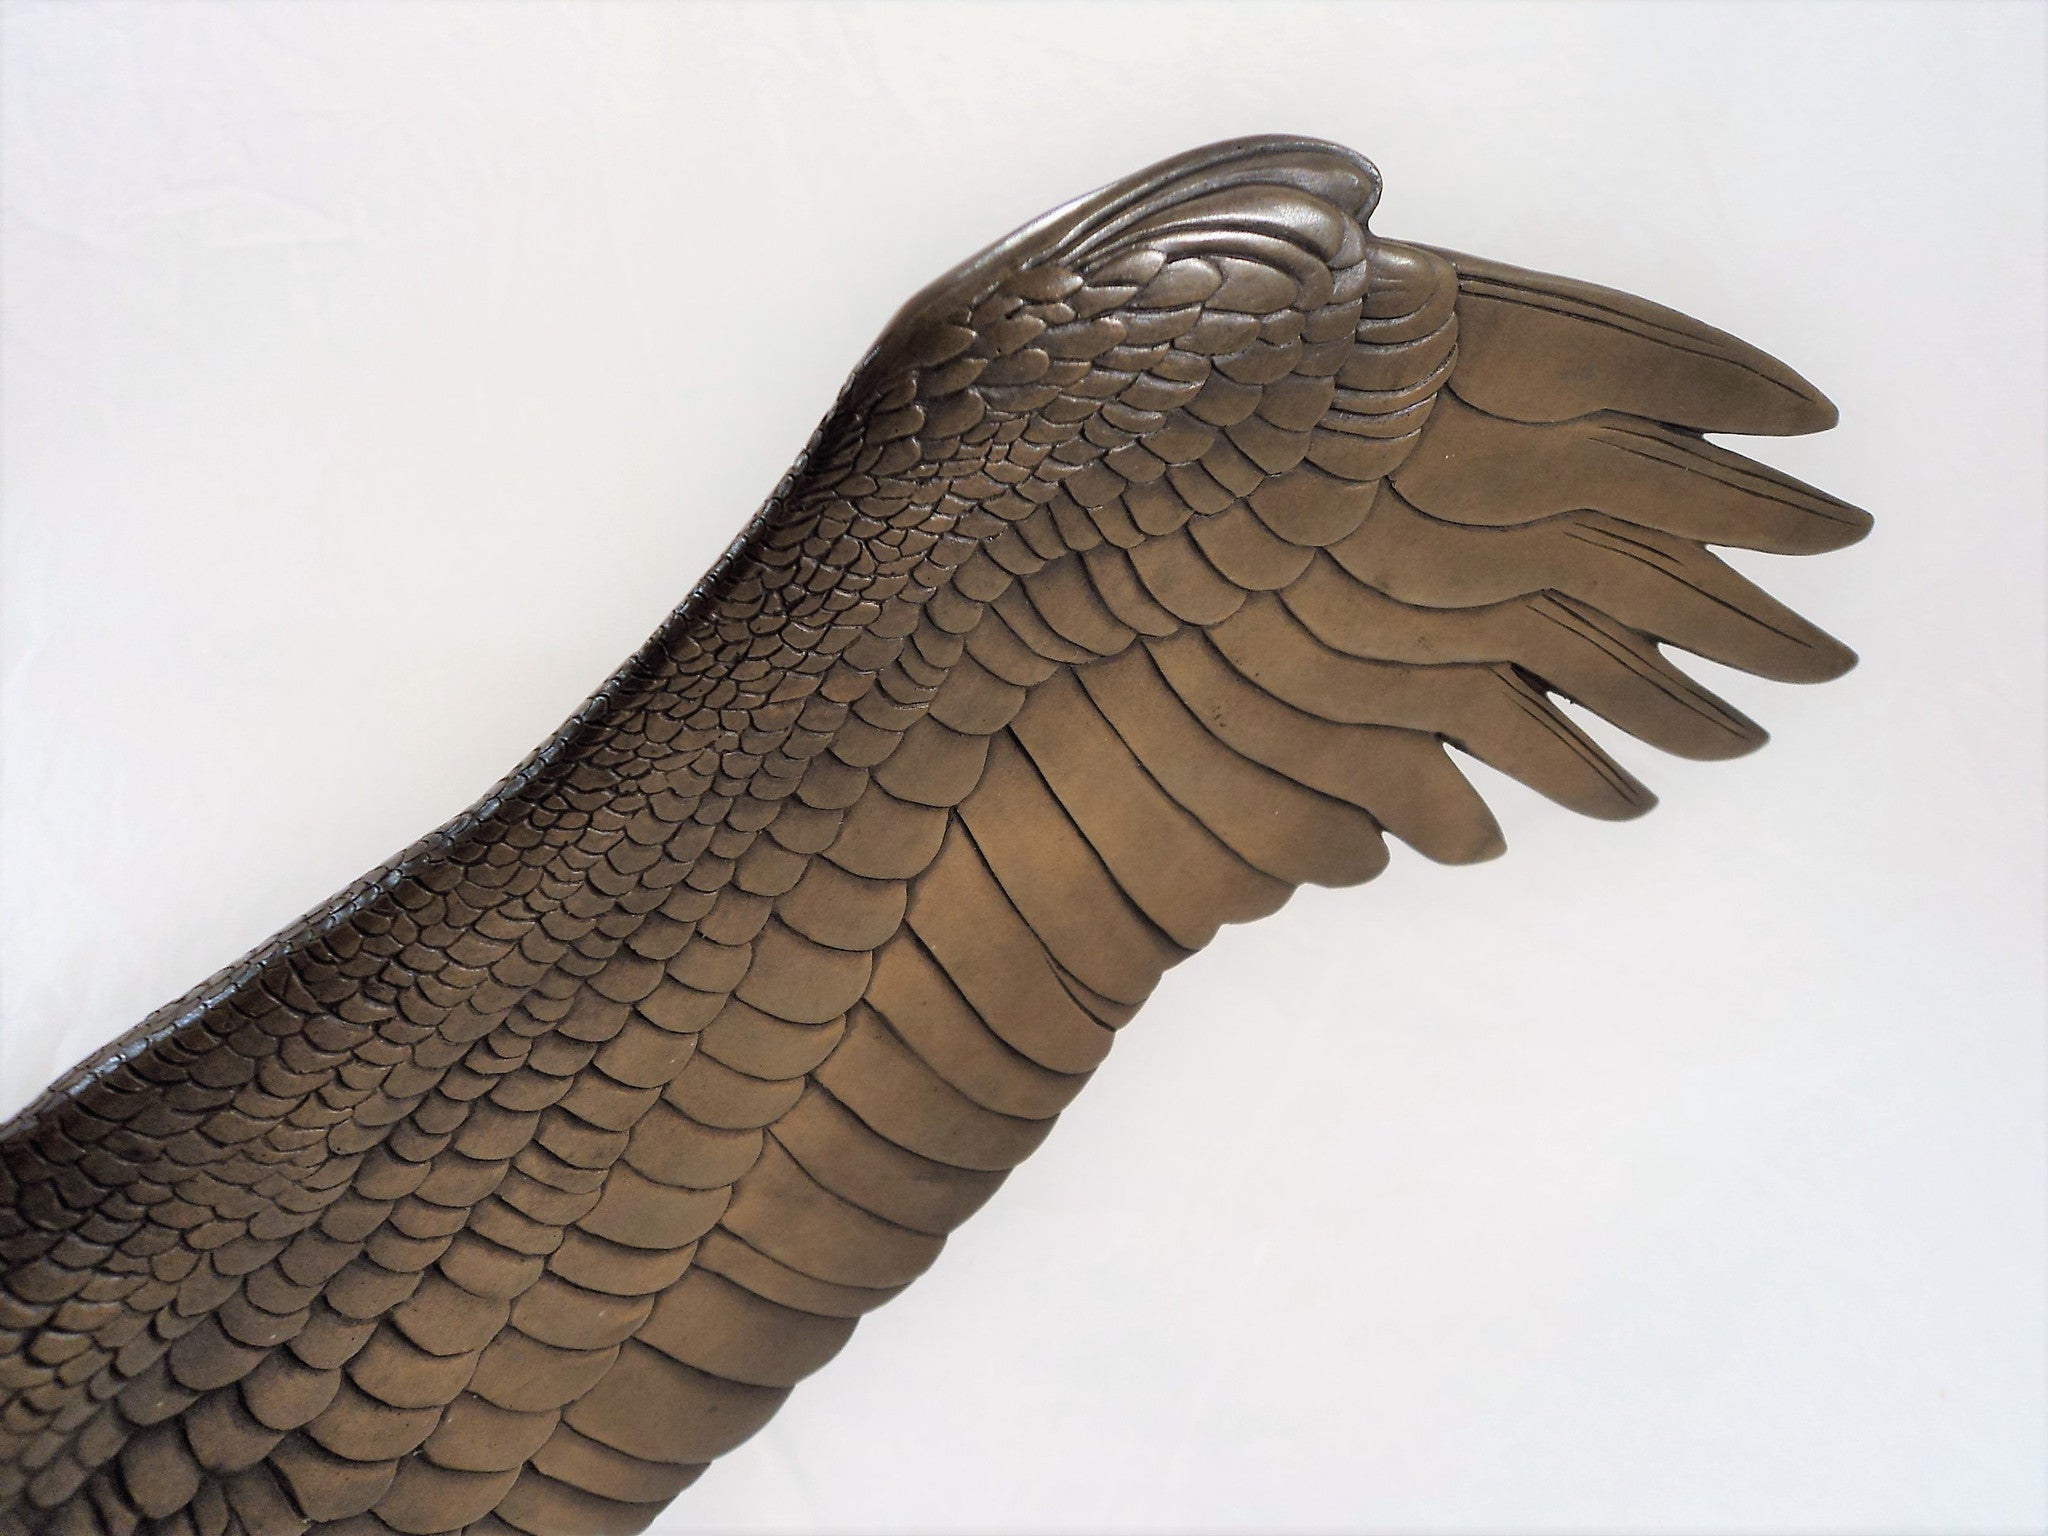 Vintage Eagle Bronze Sculpture by Gilroy Roberts (1905-1991)